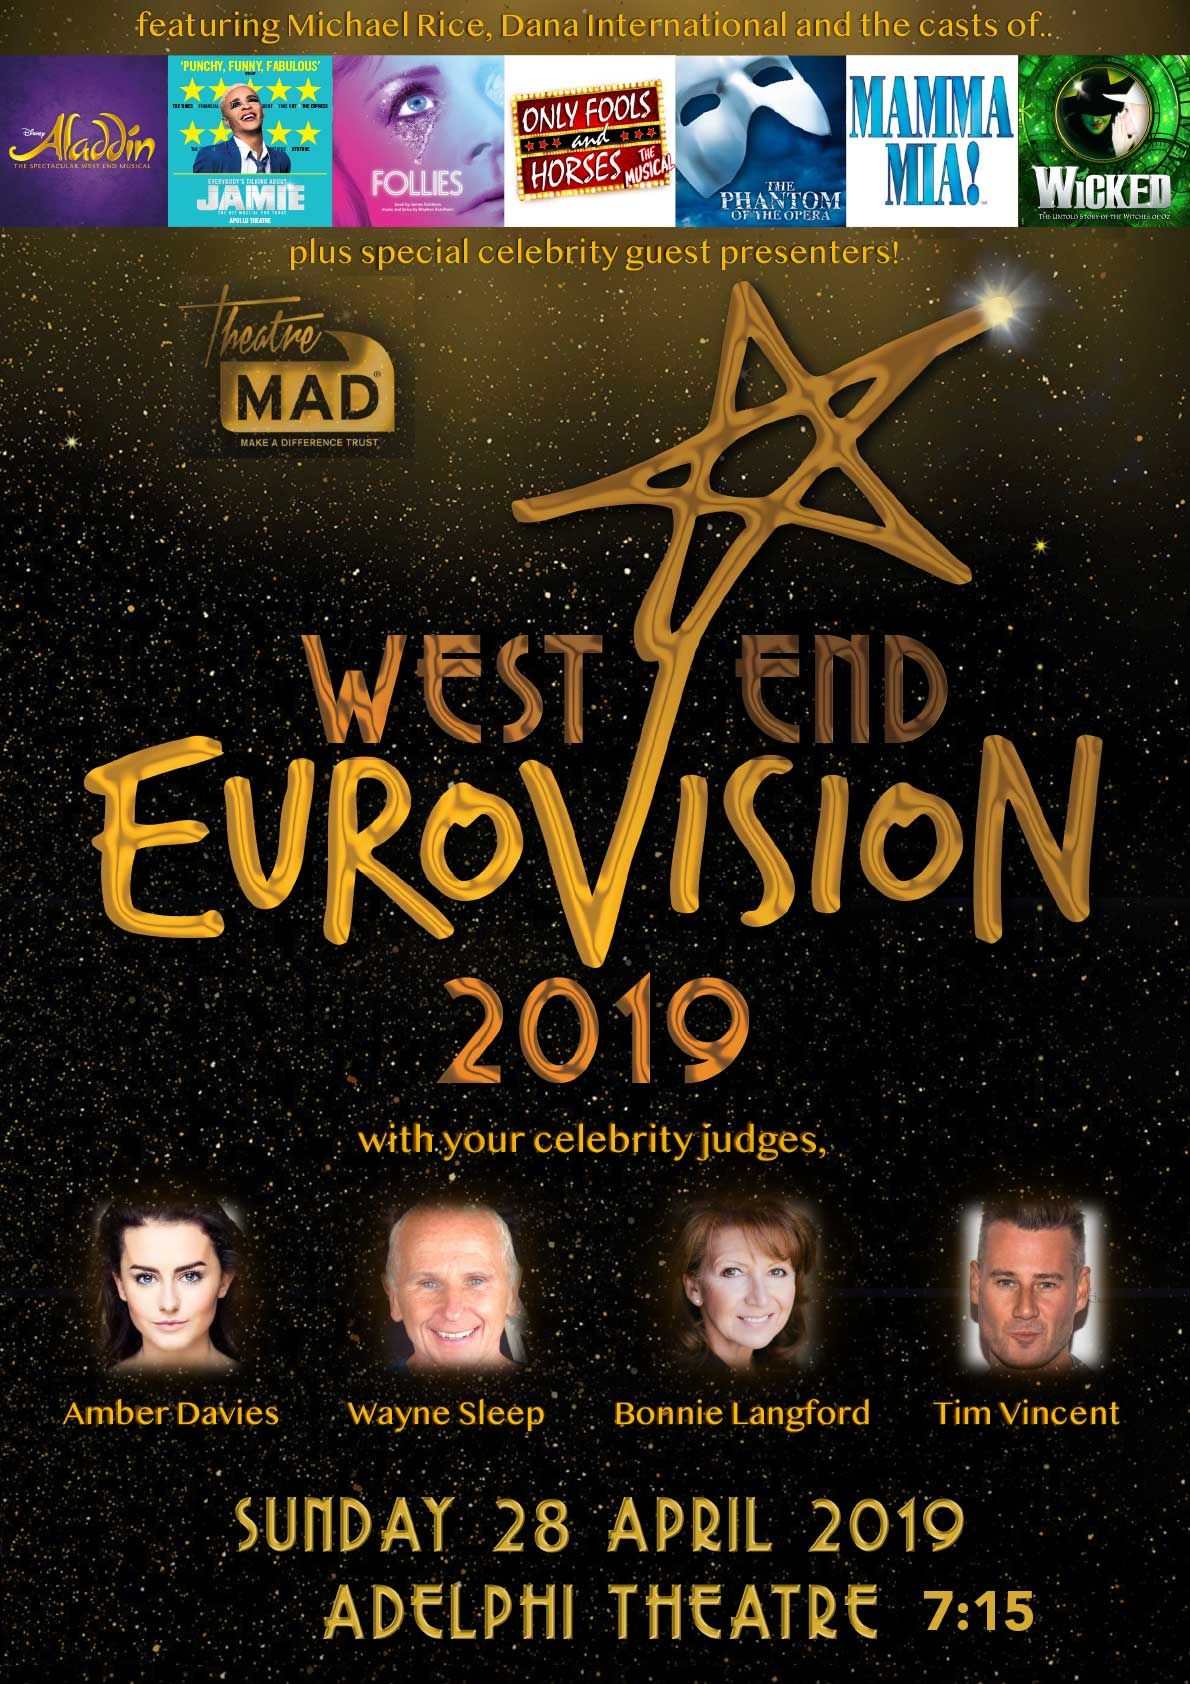 West End Eurovision 2019